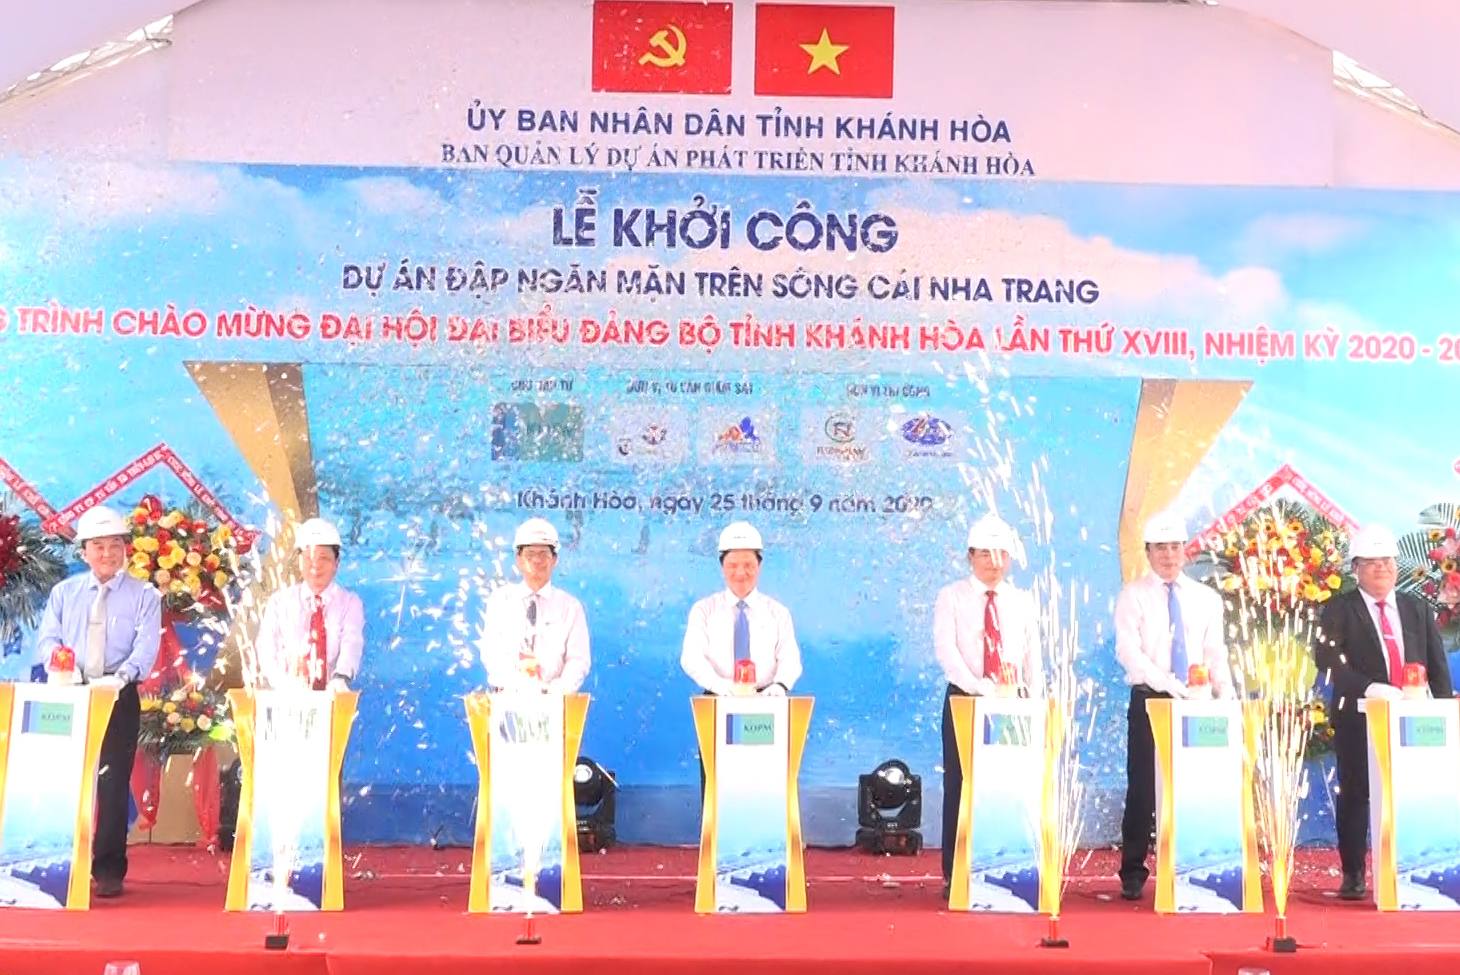 VIDEO: Construction starts on saltwater intrusion prevention dam over Cai River, Nha Trang